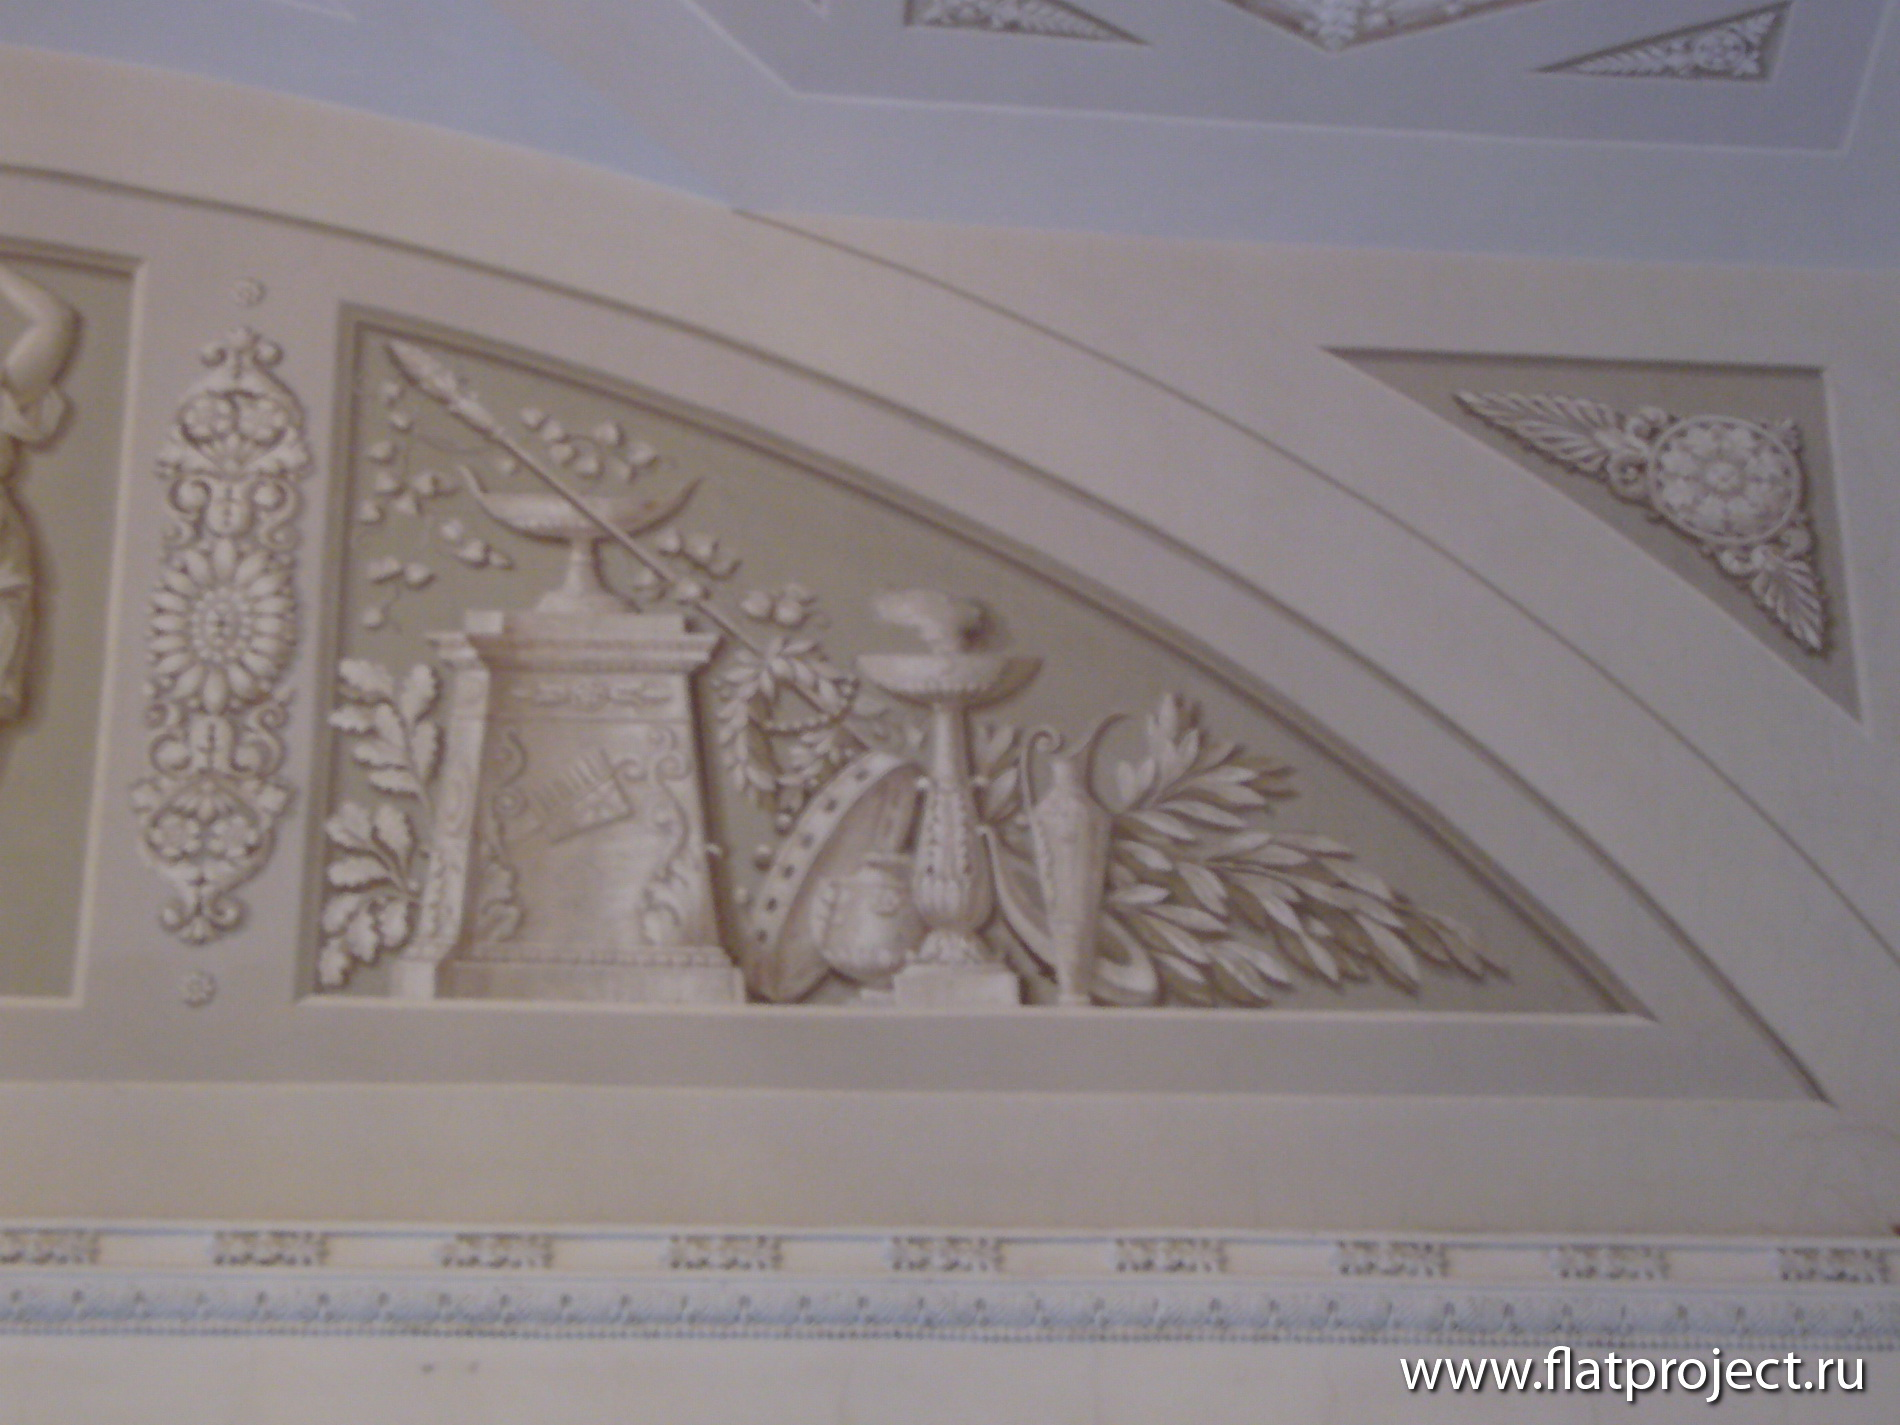 The State Russian museum interiors – photo 129